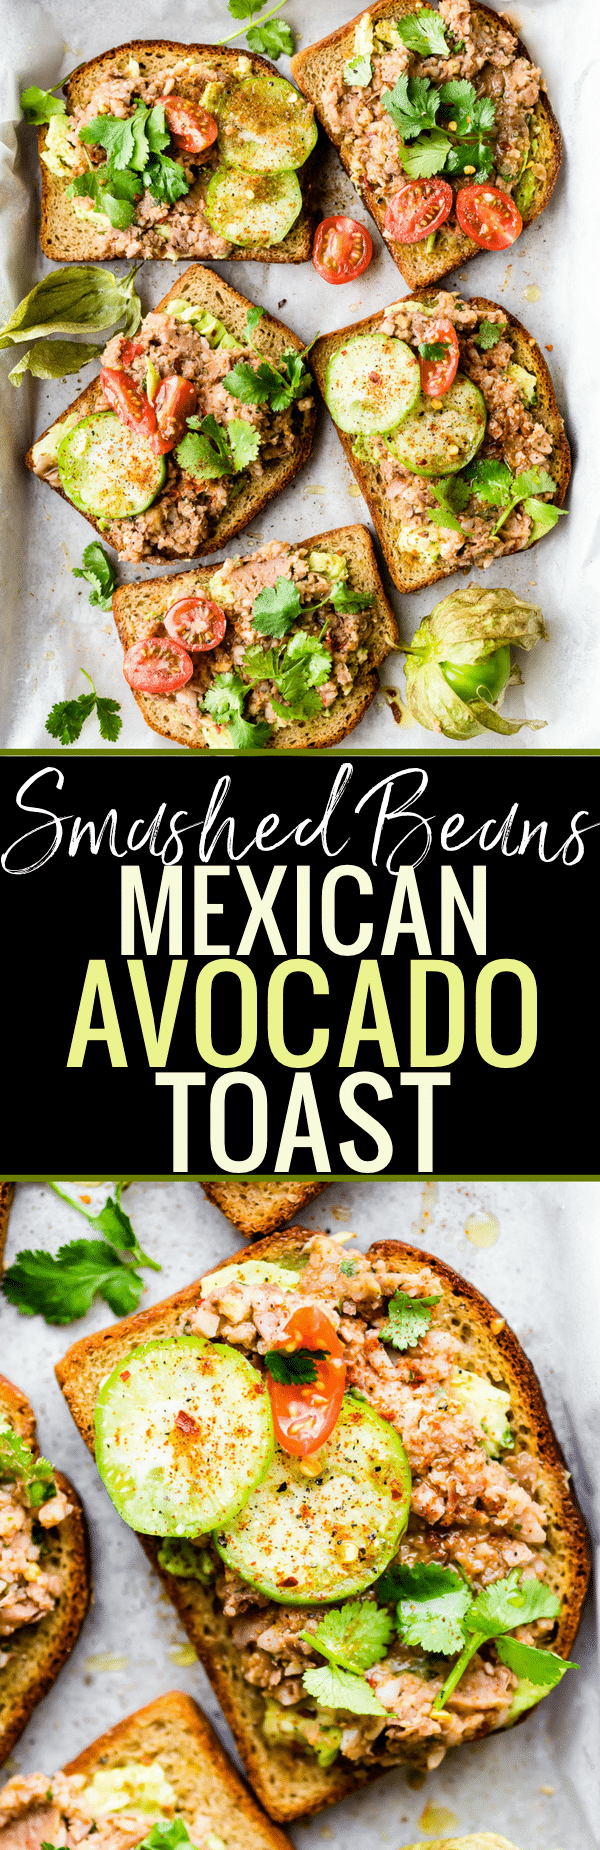 Gluten Free Smashed Mexican Beans Avocado Toast recipe! A heartier yet Healthy take on Avocado Toast Recipes. This Fully Loaded MEXICAN style avocado toast is Vegan Friendly and loaded with Flavor!! A simple, yet spicy, meatless meal, breakfast, or even a quick appetizer. www.cottercrunch.com